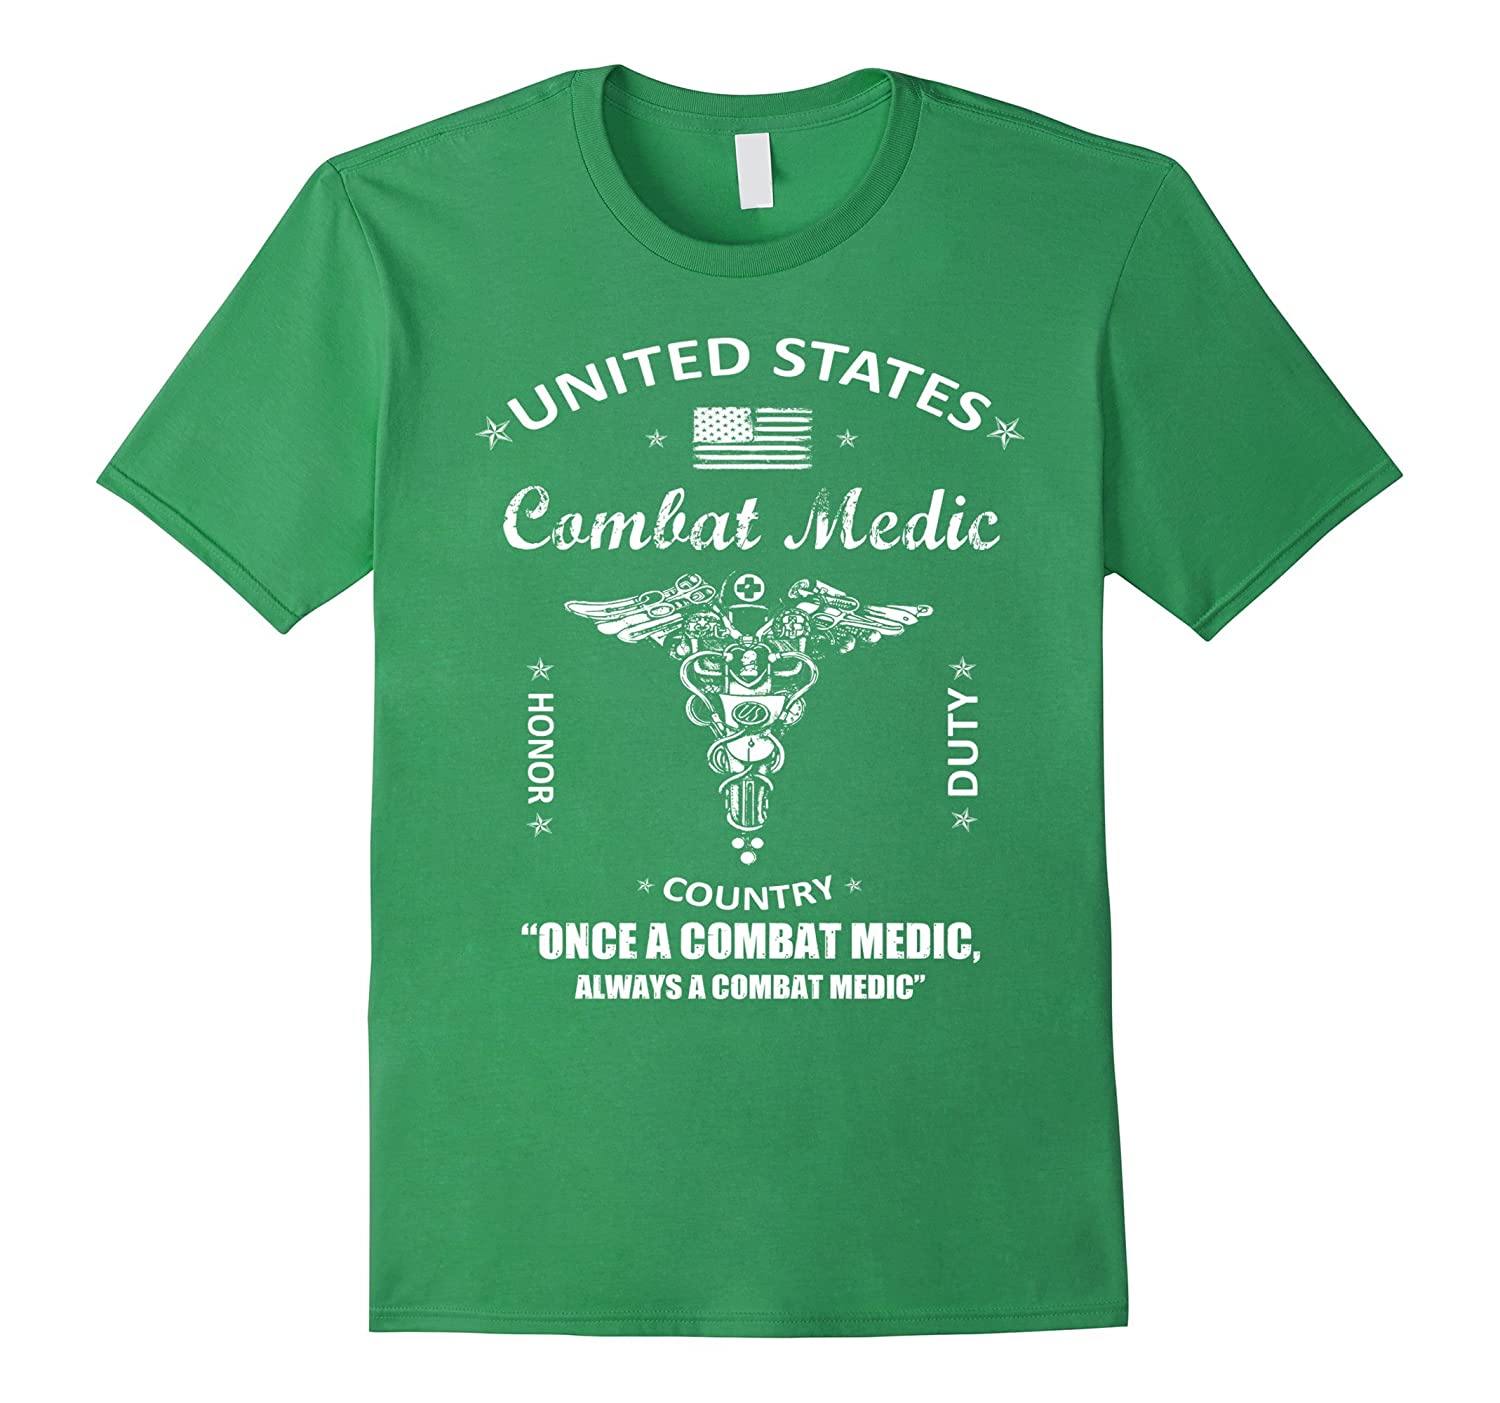 Combat medic shirt, United state honor duty country one an c